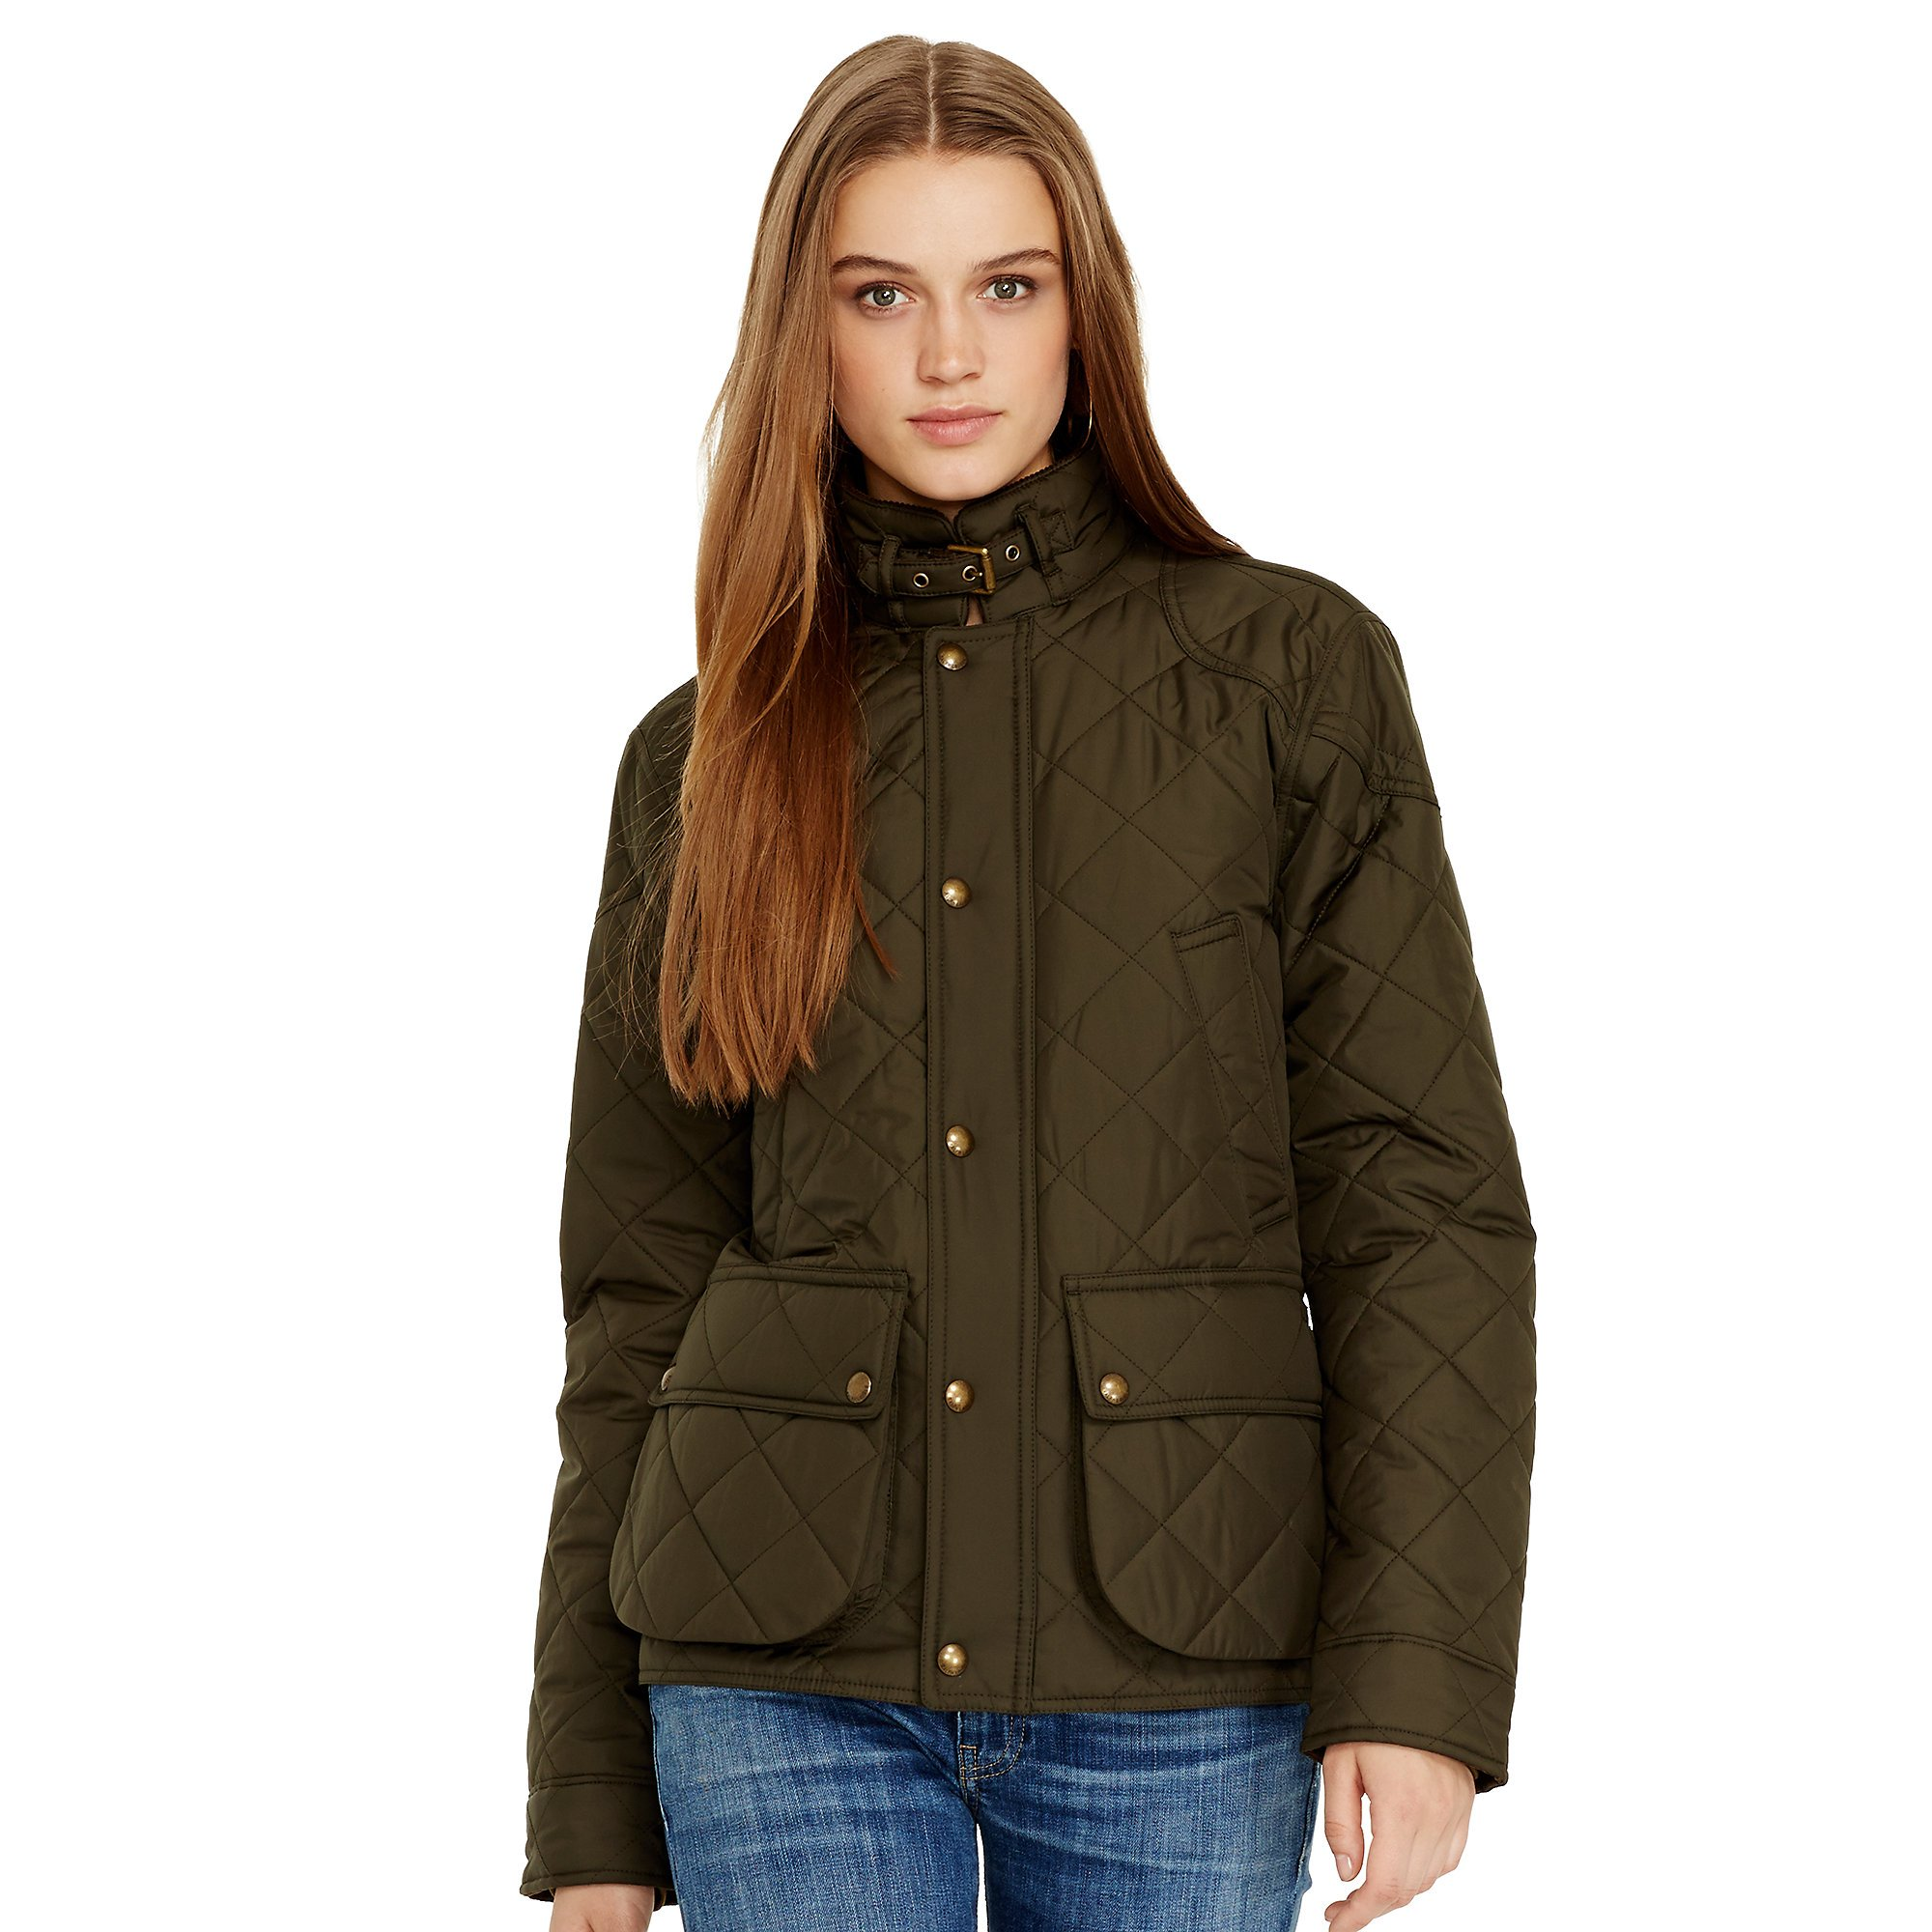 Lyst - Polo Ralph Lauren Quilted Bomber Jacket in Green 7c02a2d7a